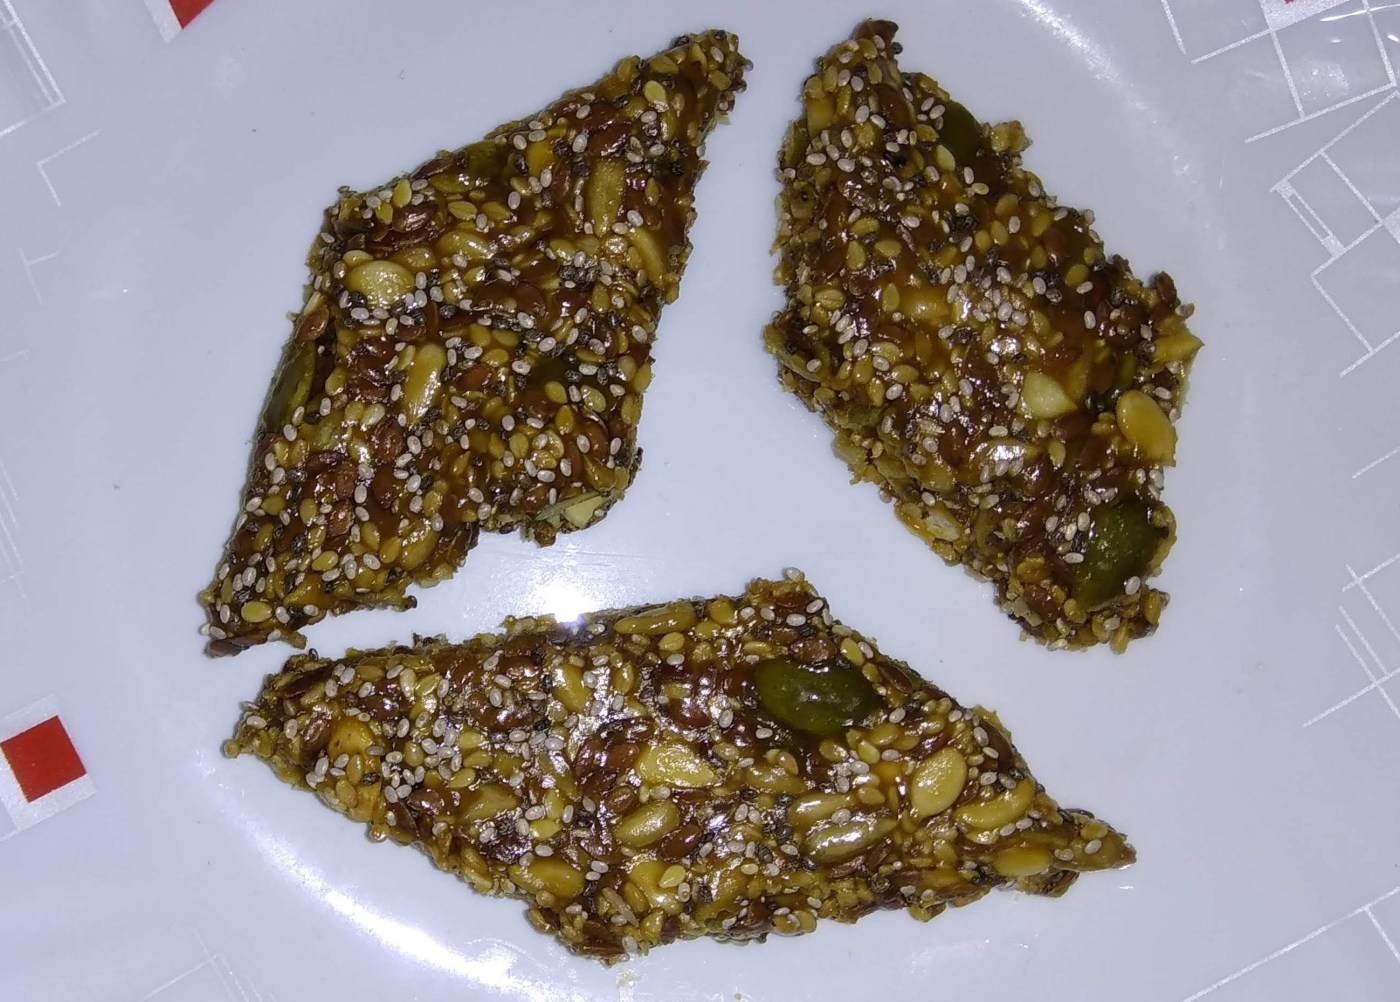 Multiseed bar(chiki) in jaggery